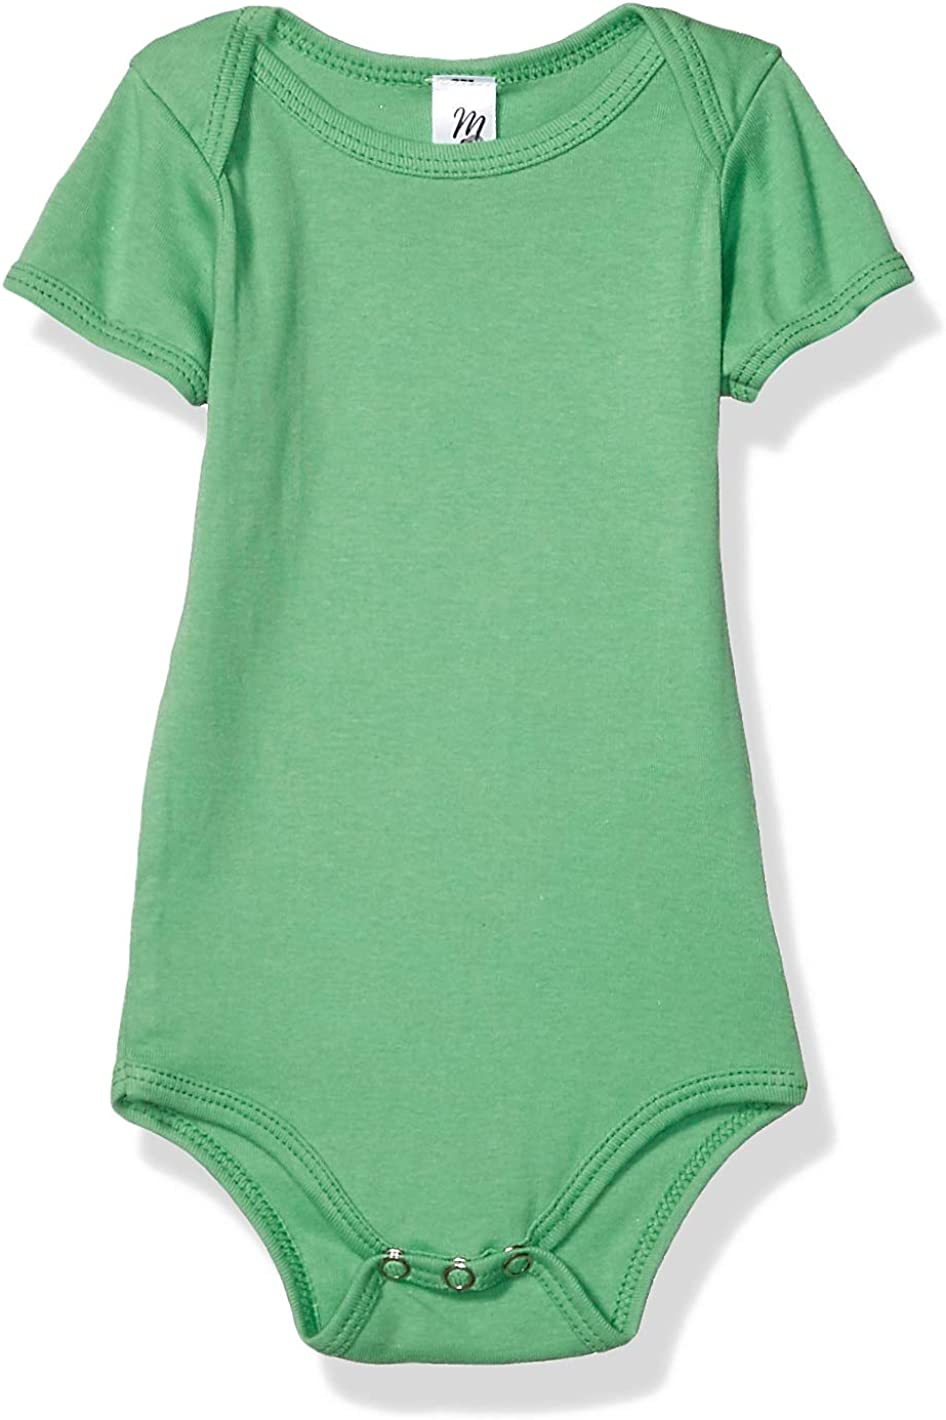 Marky G Apparel Baby Rib Short-Sleeve One-Piece-2 Pack